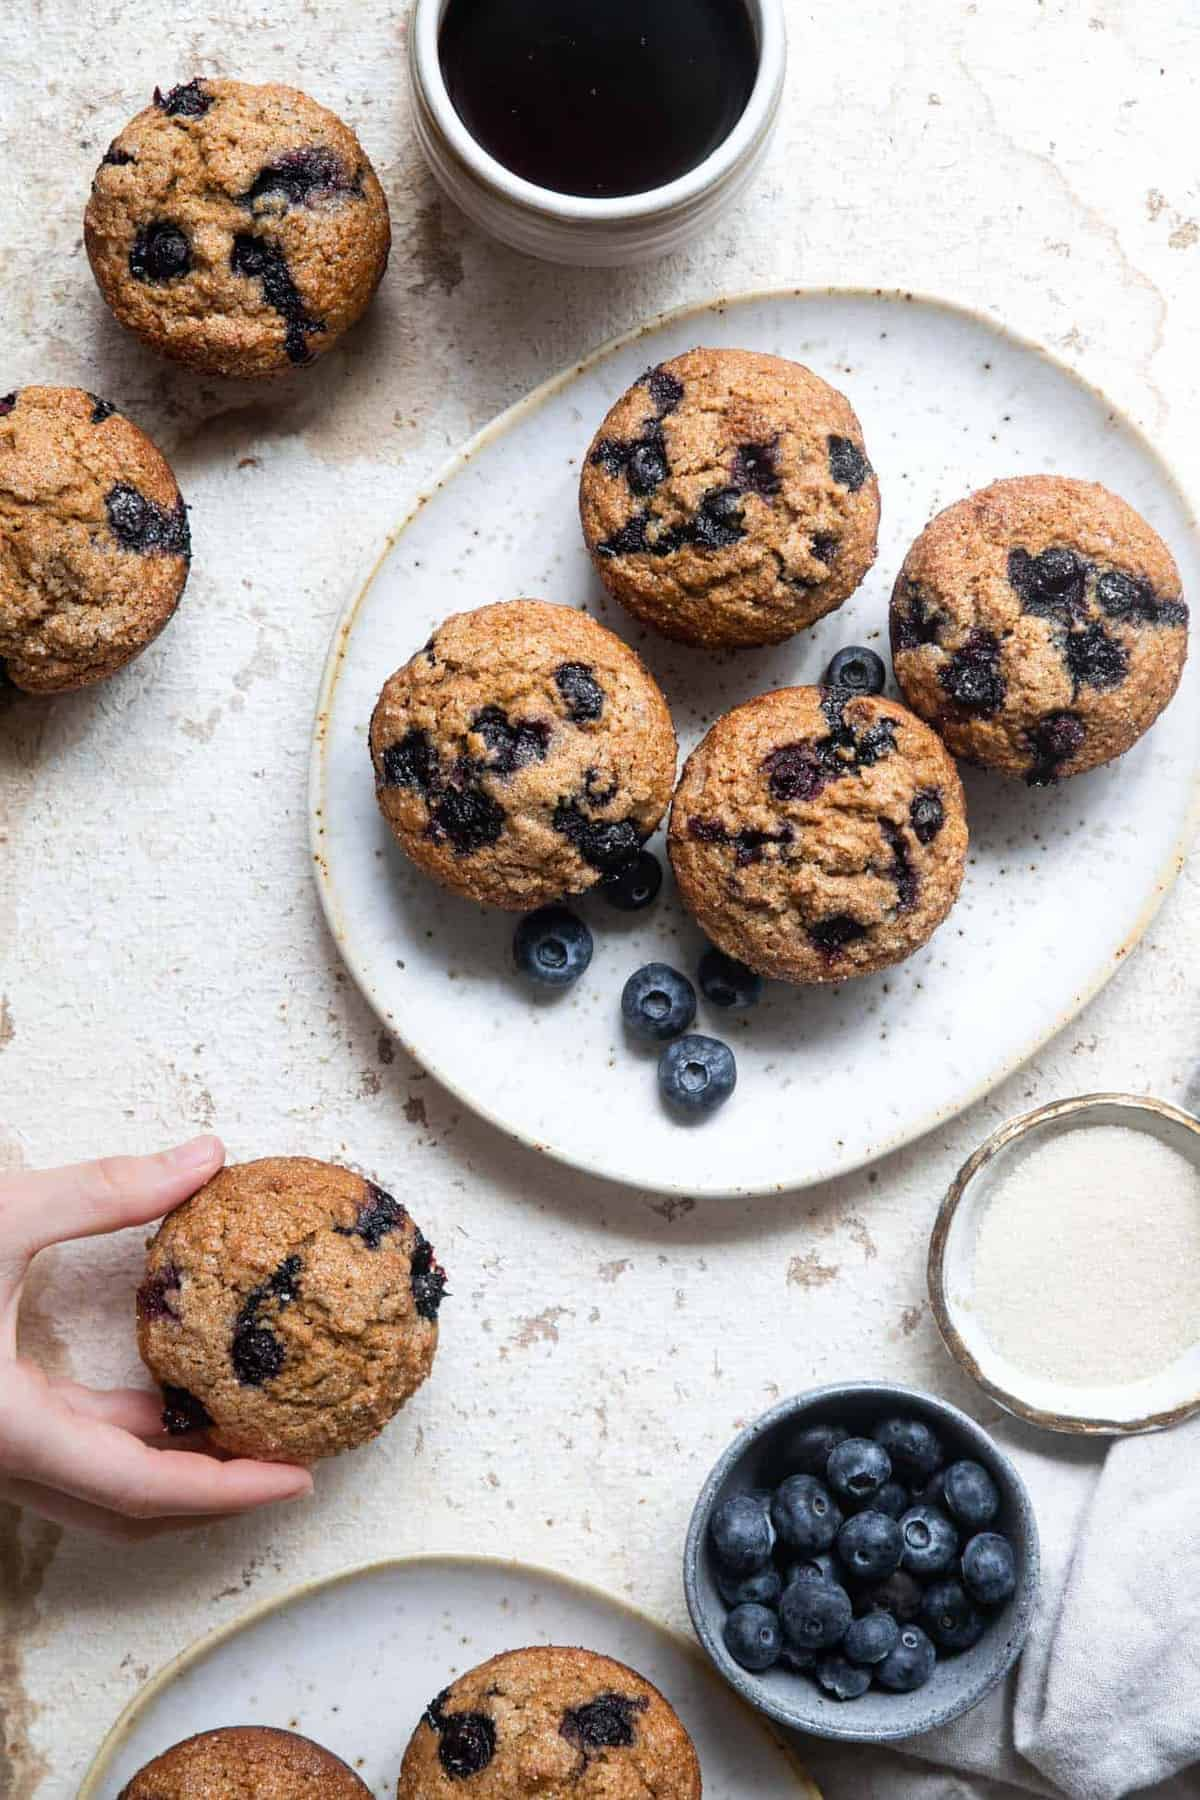 whole wheat blueberry muffins on a plate with a hand grabbing one